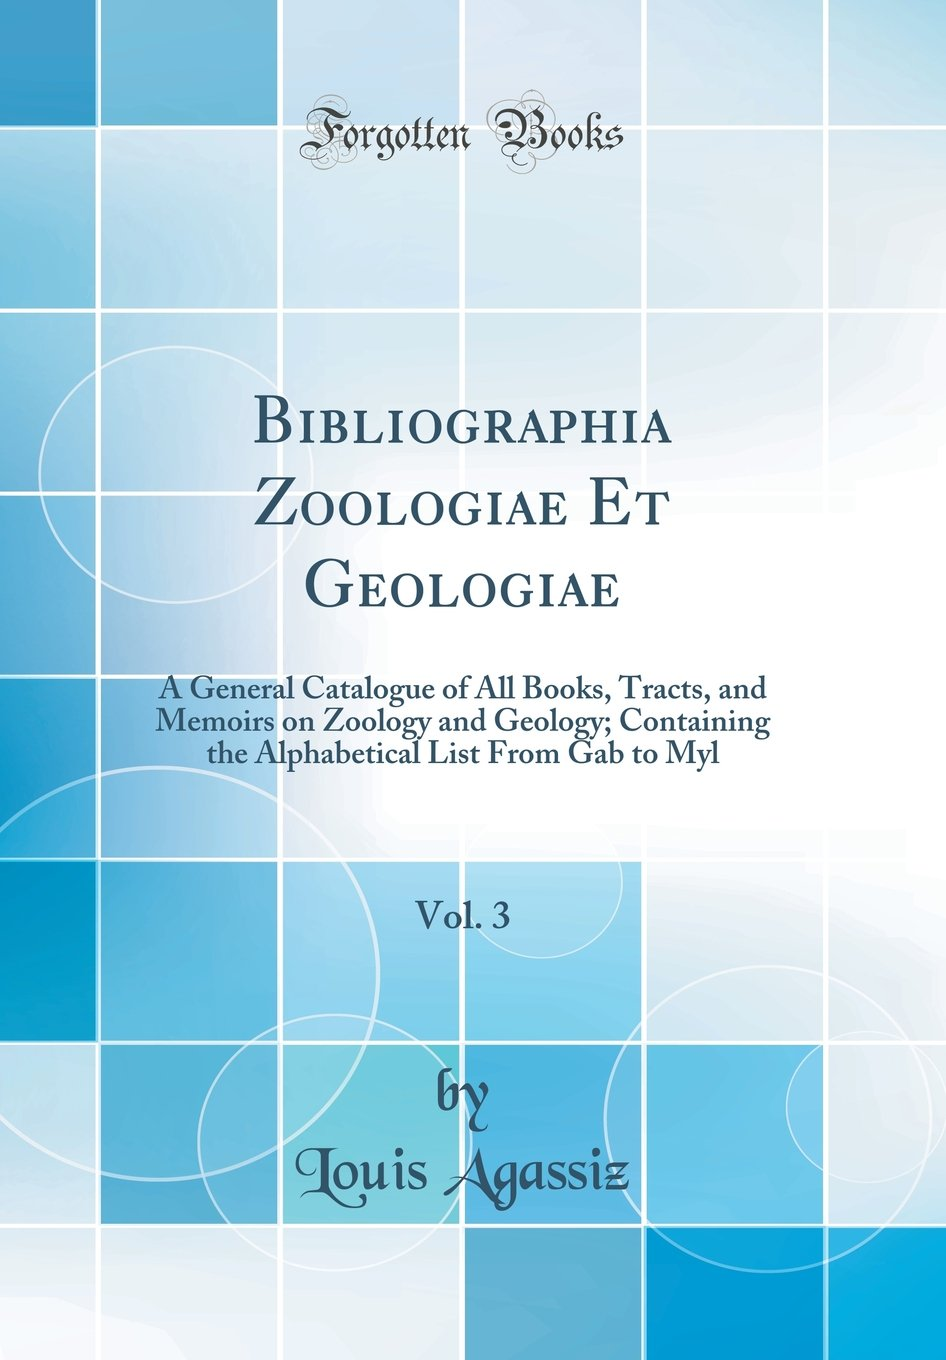 Bibliographia Zoologiae Et Geologiae, Vol. 3: A General Catalogue of All Books, Tracts, and Memoirs on Zoology and Geology; Containing the Alphabetical List From Gab to Myl (Classic Reprint) pdf epub